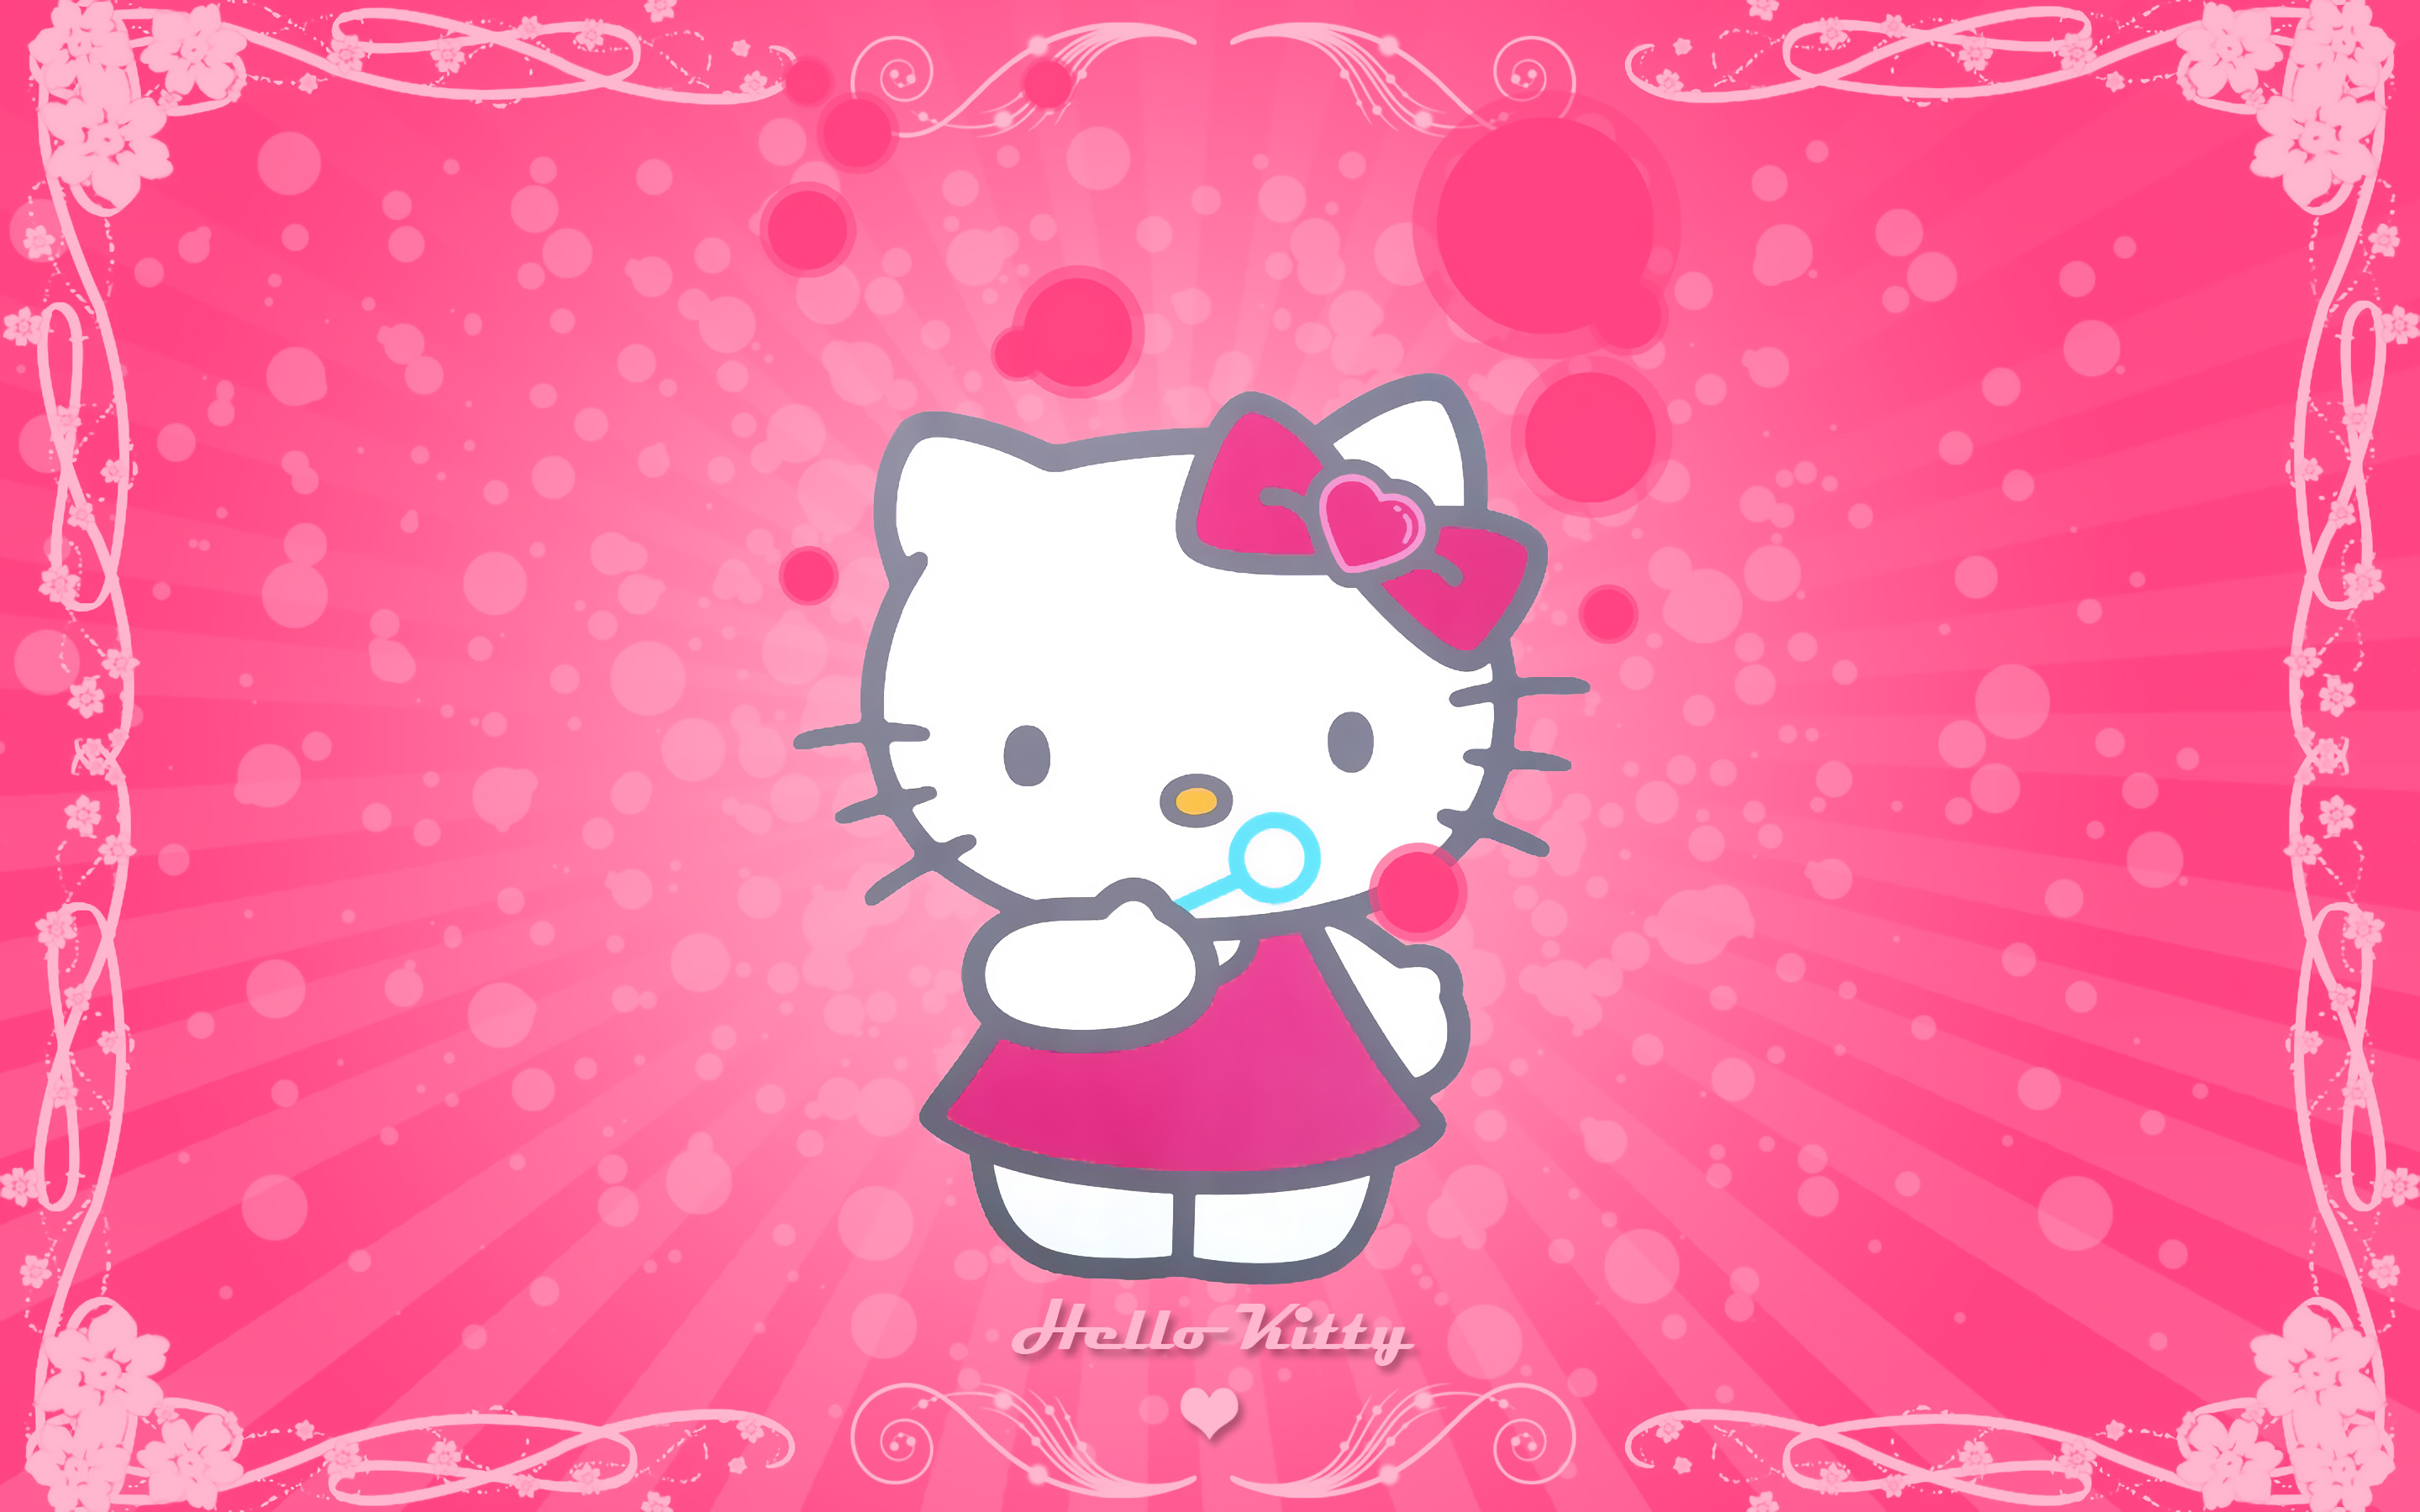 Fantastic Wallpaper Hello Kitty Floral - 632184-wallpaper-hello-kitty-2880x1800-for-windows-10  Picture_856276.jpg